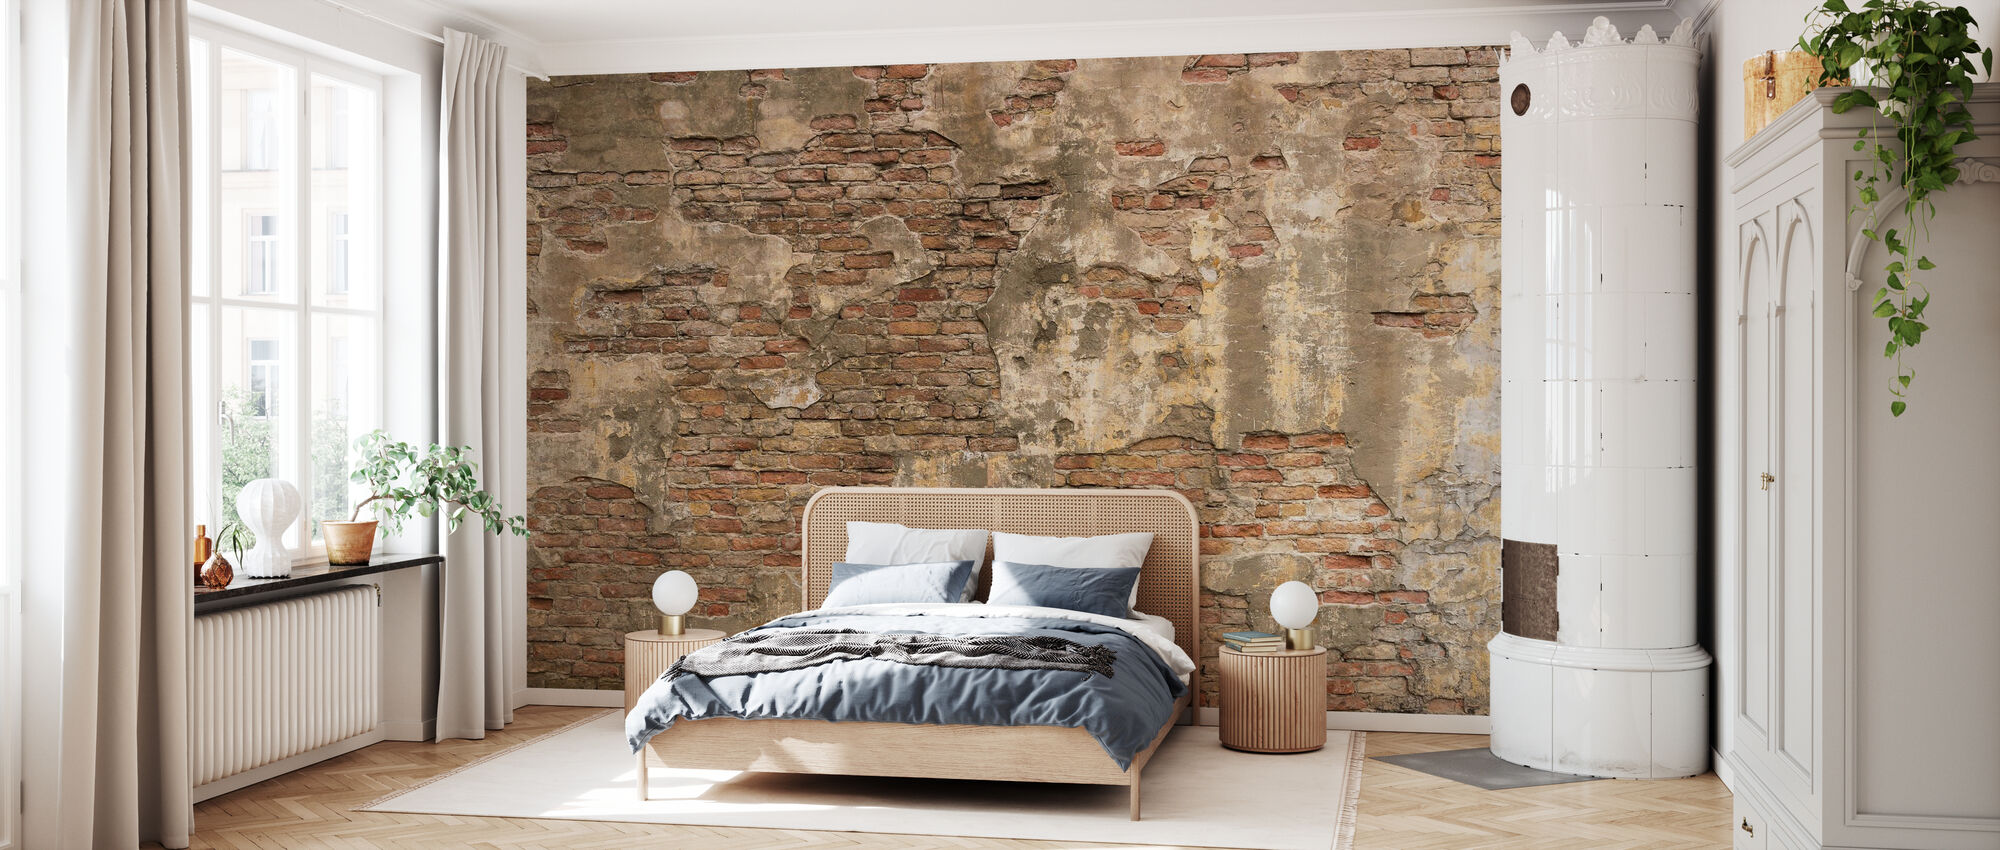 Old Stone Wall - Wallpaper - Bedroom